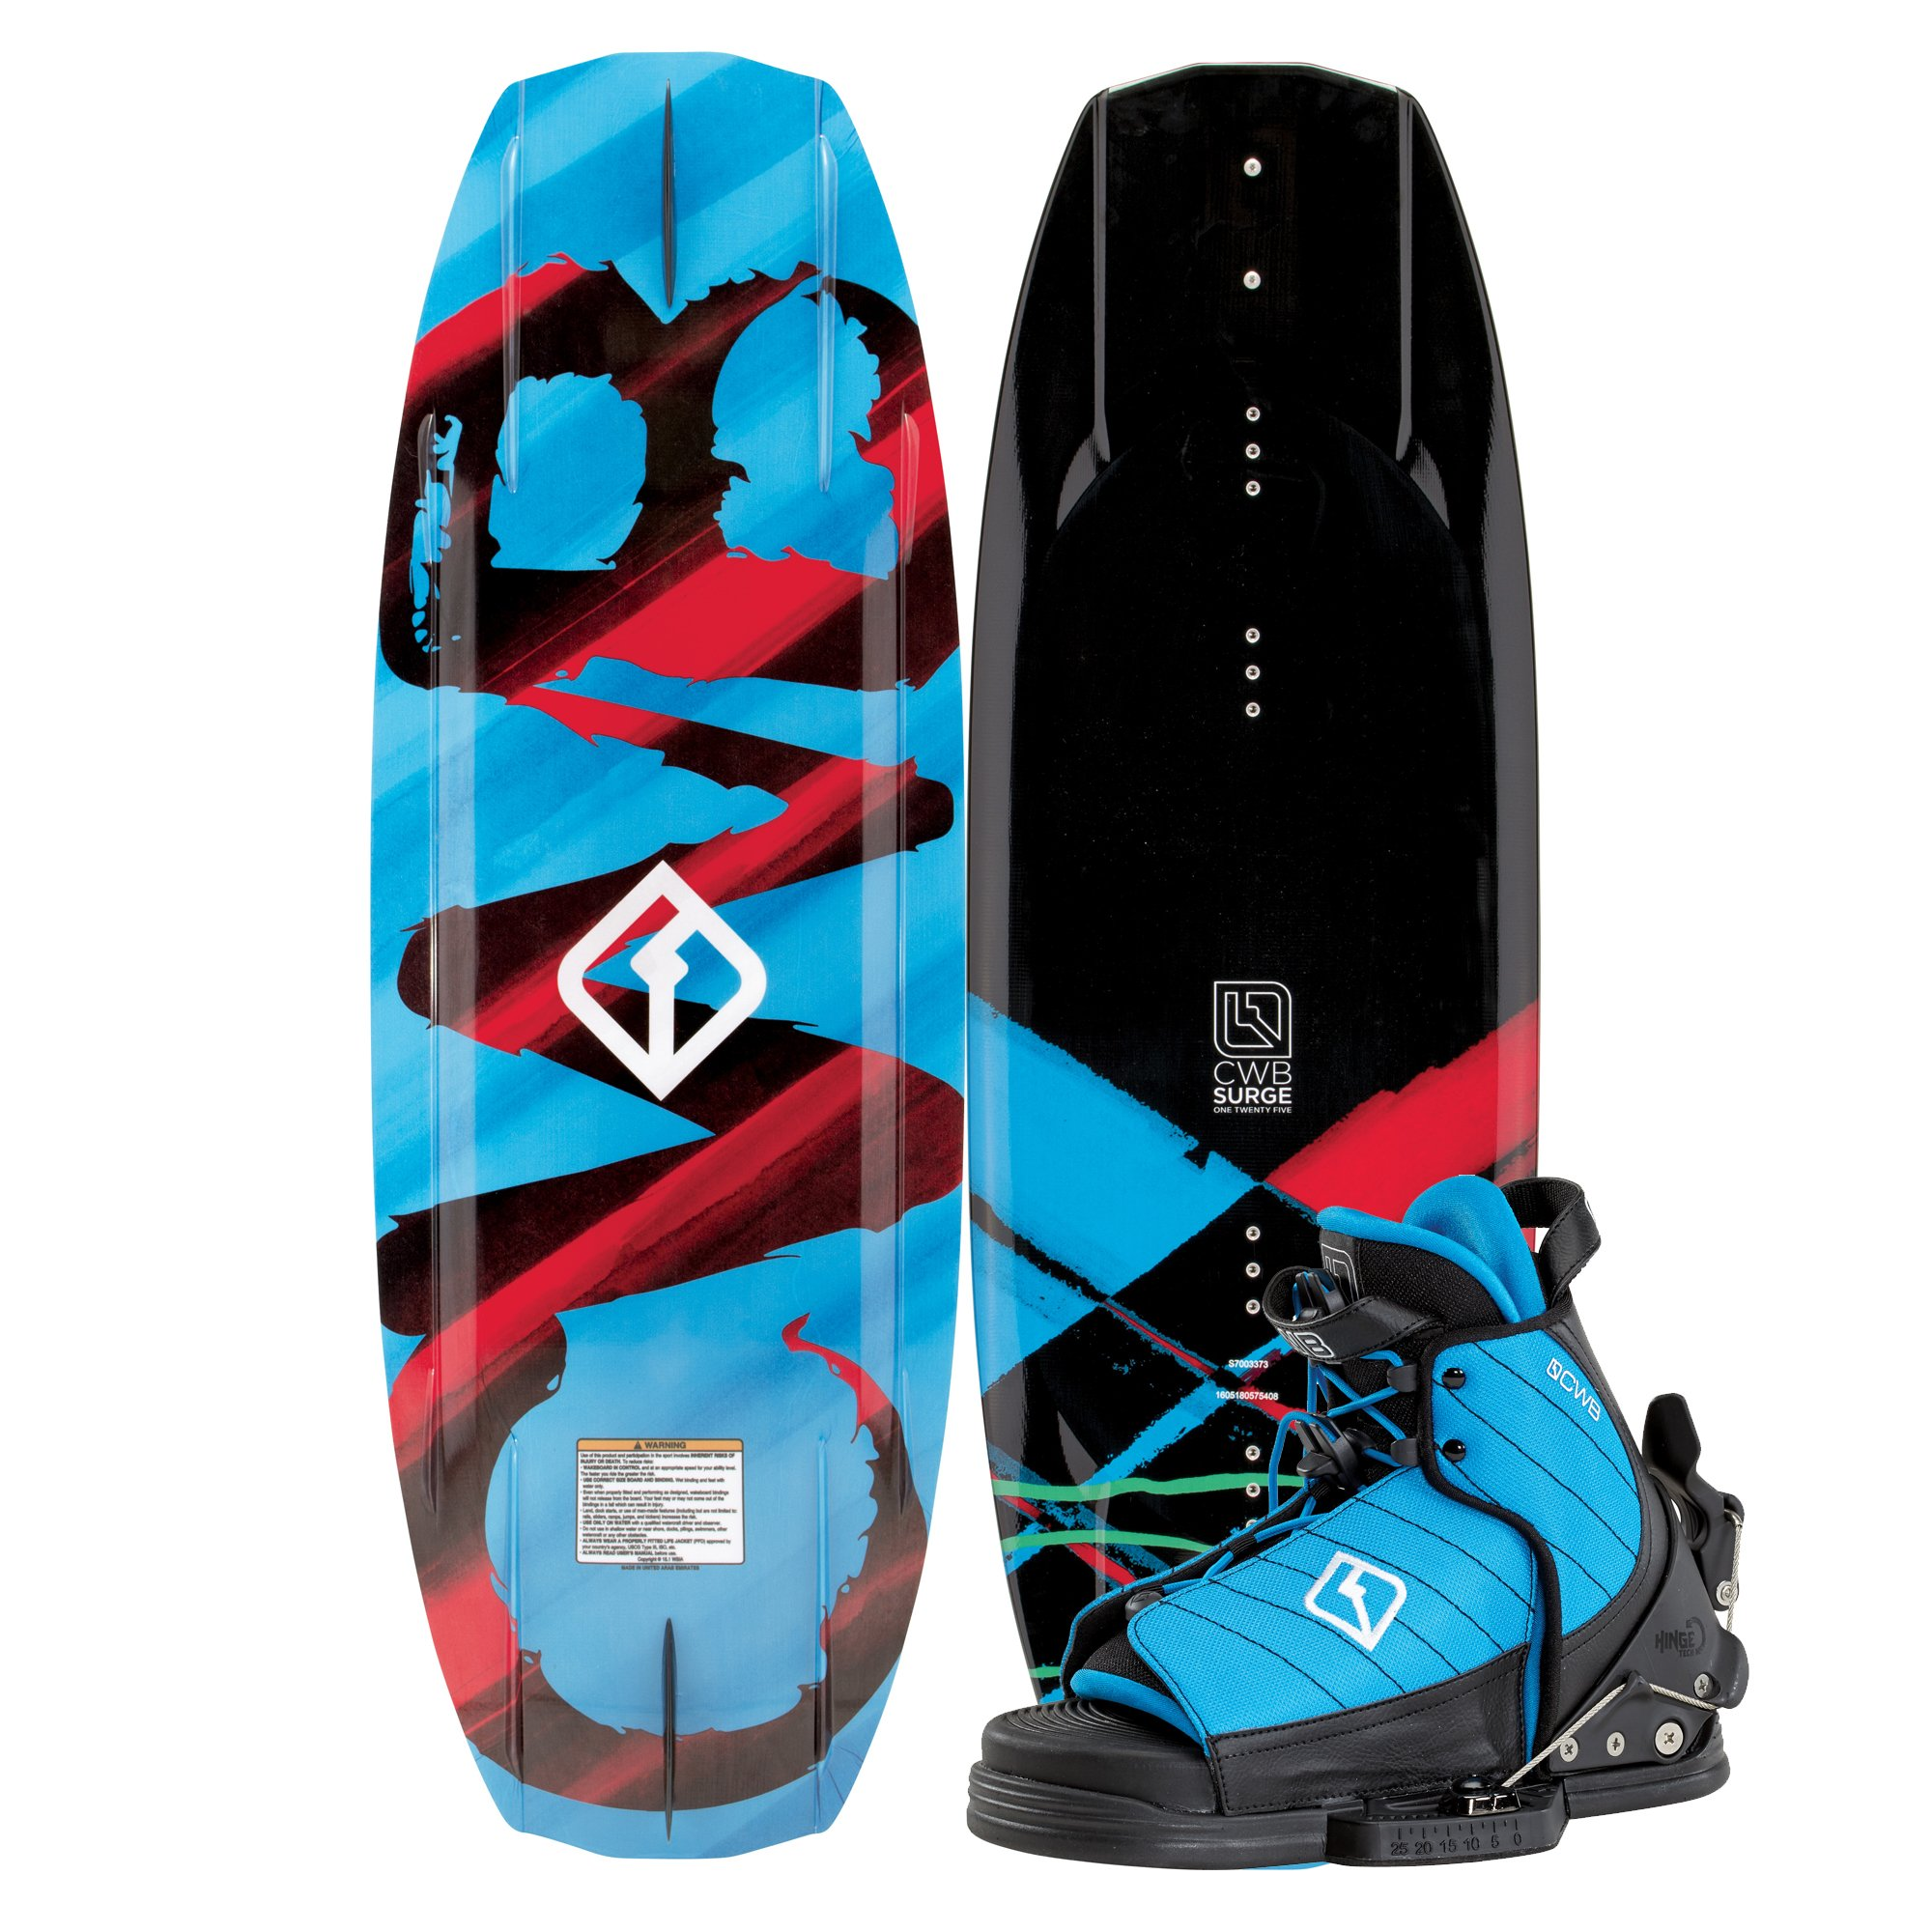 Connelly Surge 2017 Tyke Kids Wakeboard for Age (1-4), 125cm by CWB